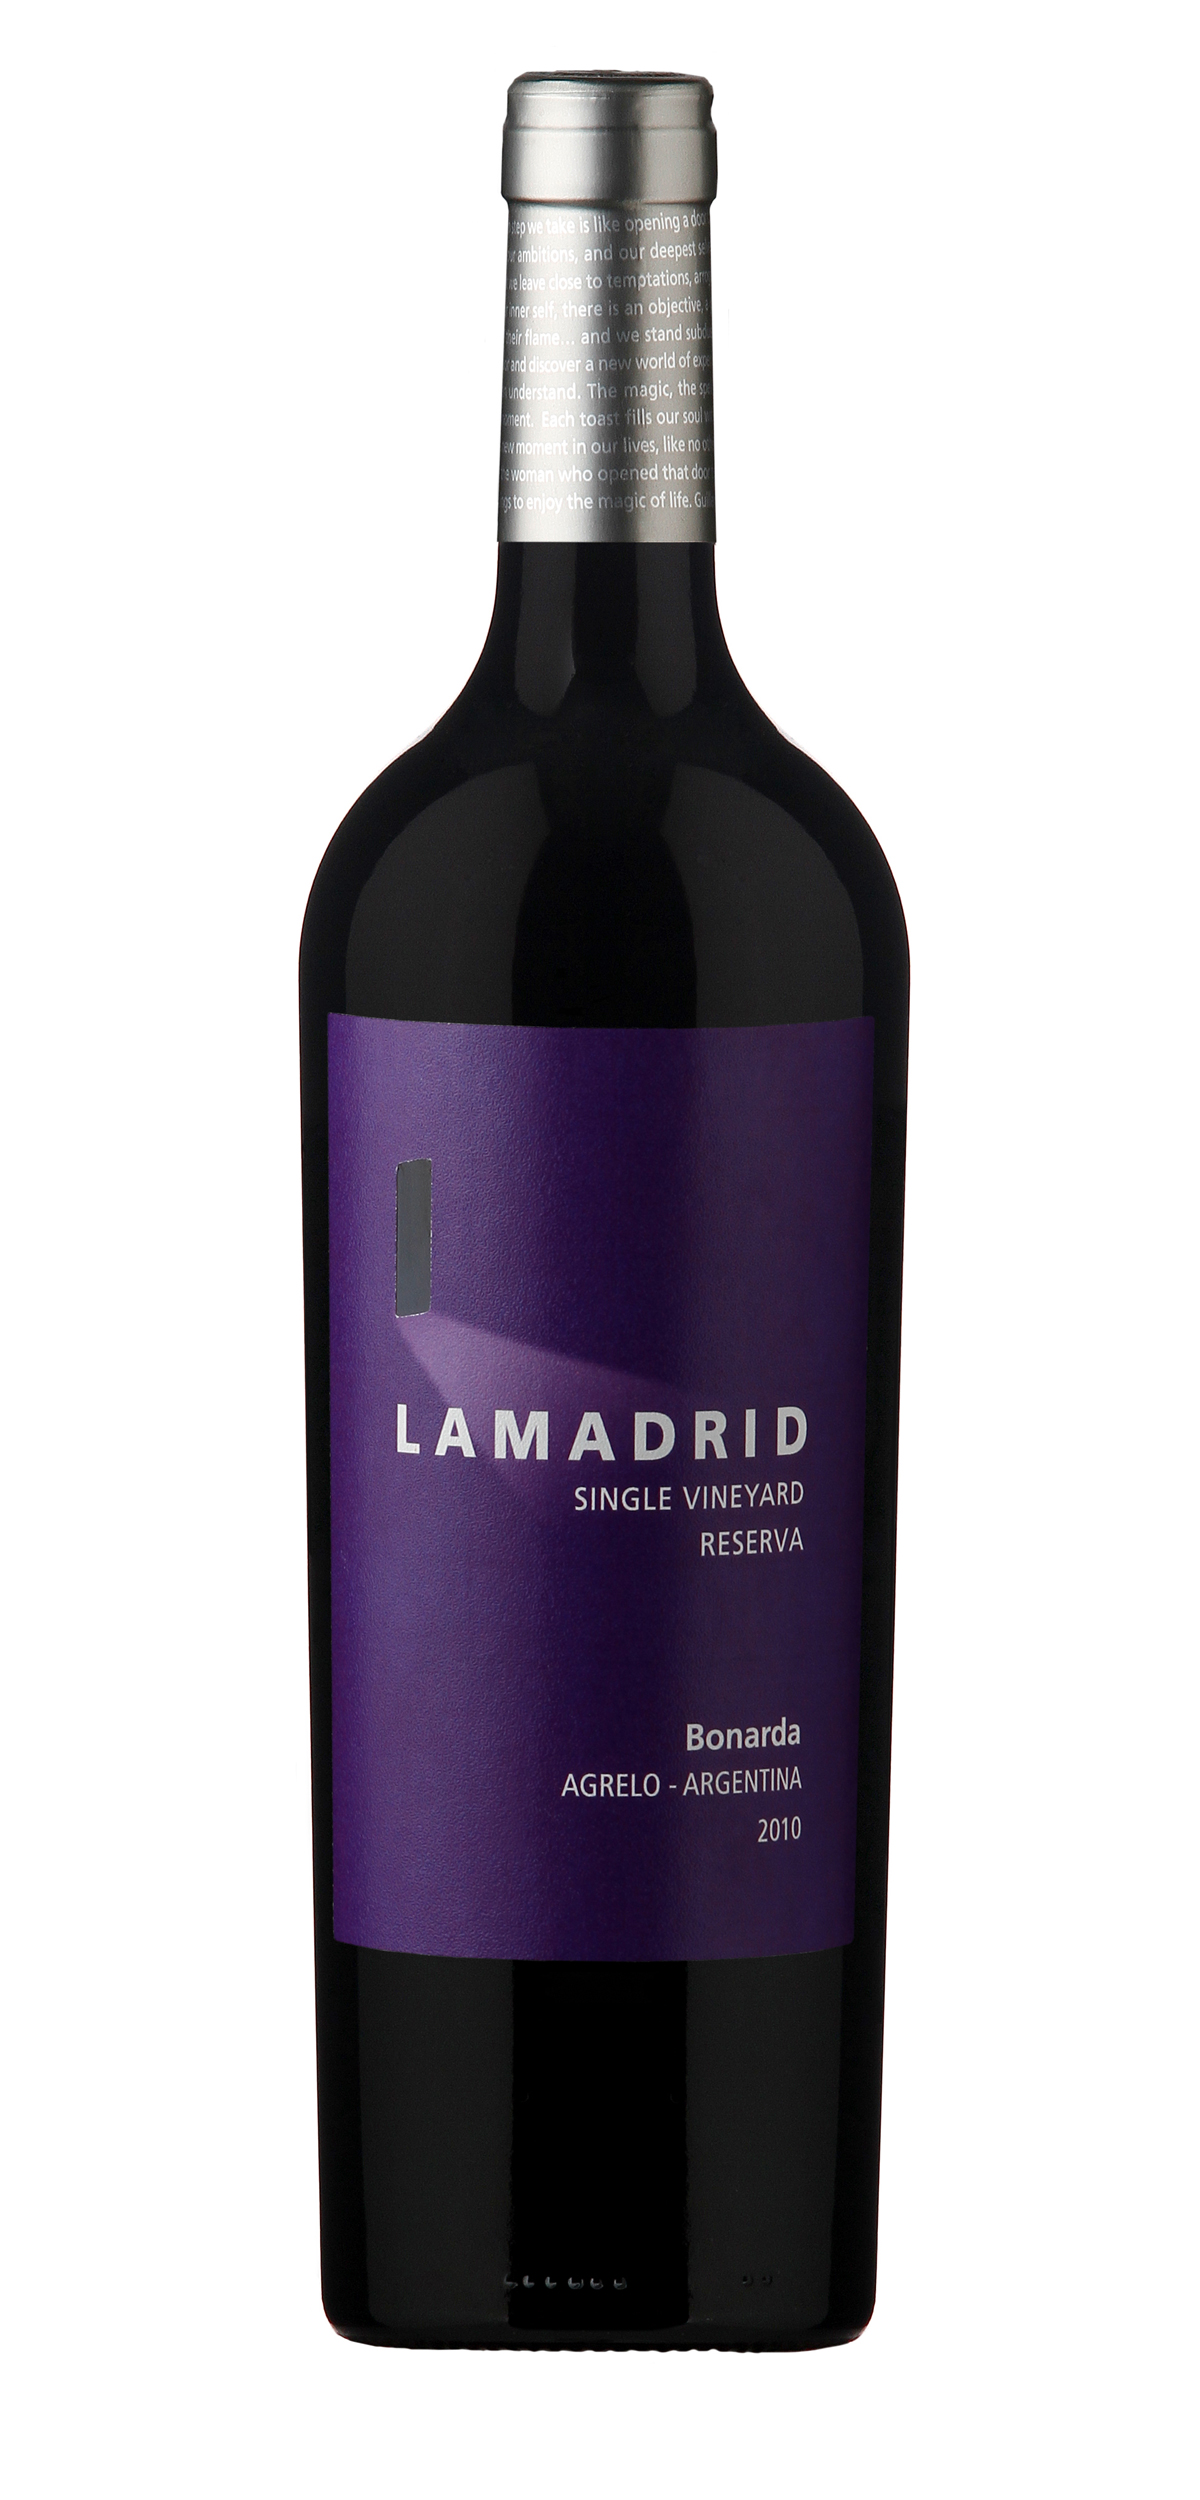 Lamadrid Bonarda Reserva wine bottle design